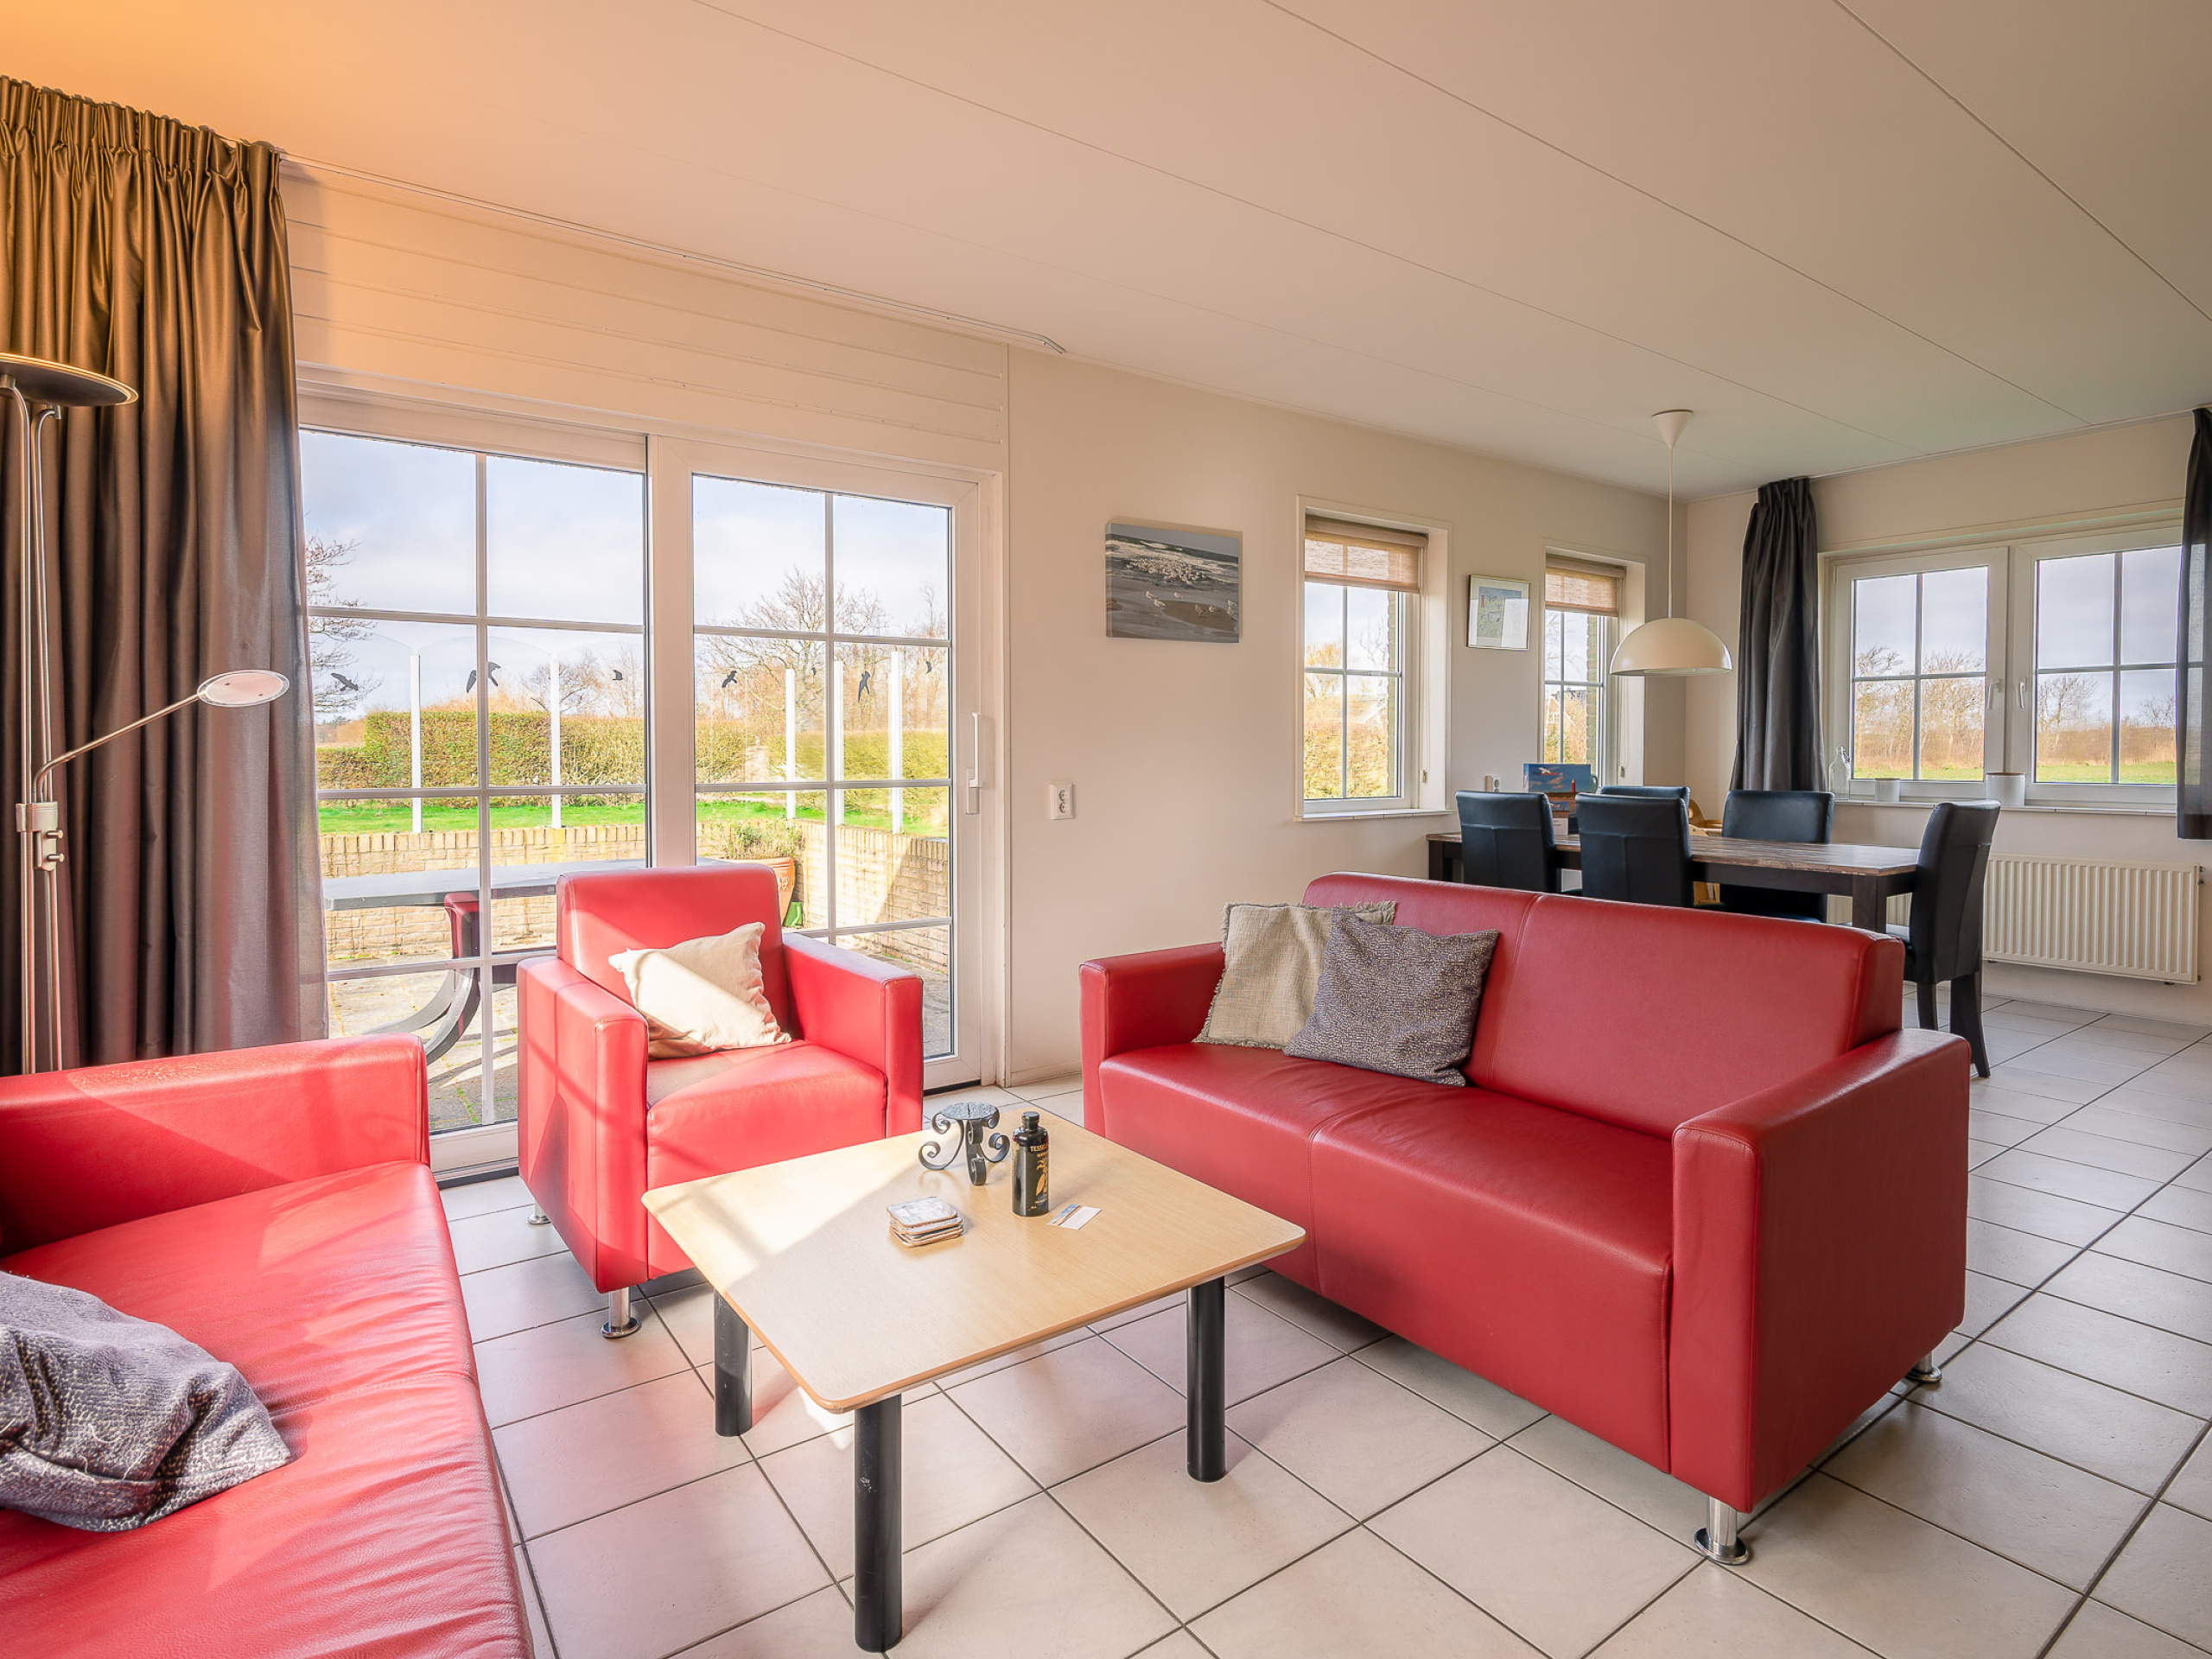 Luxury large holiday home with wide views on the edge of De Koog